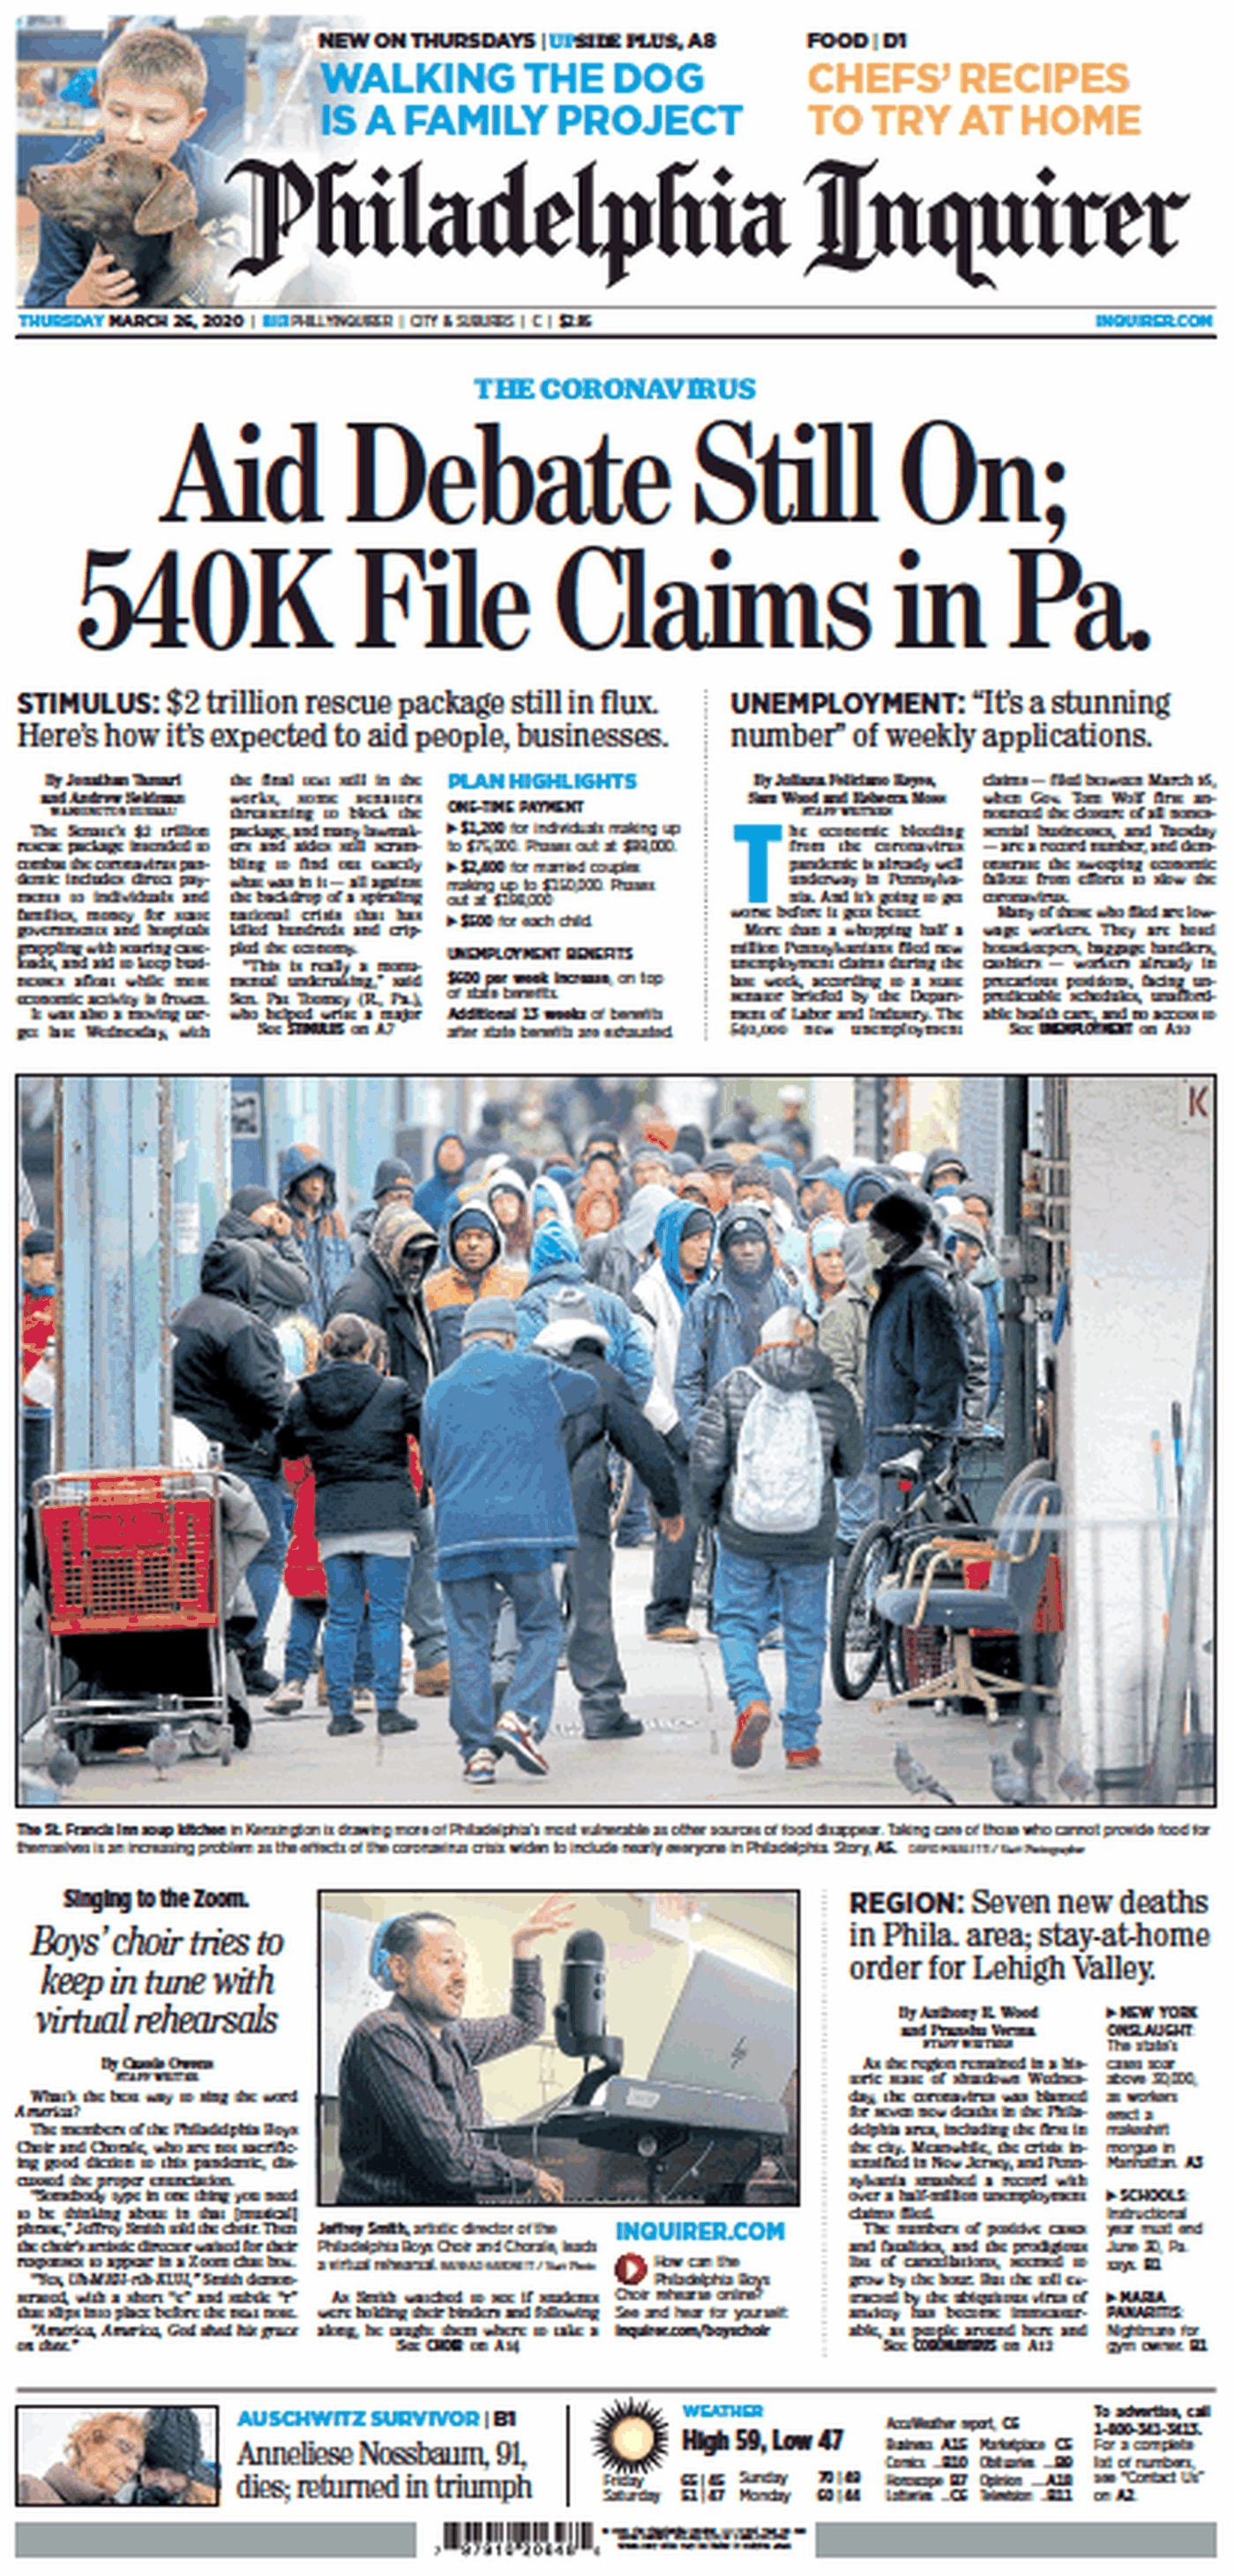 The Philadelphia Inquirer's front page for Thursday, March 26, 2020.